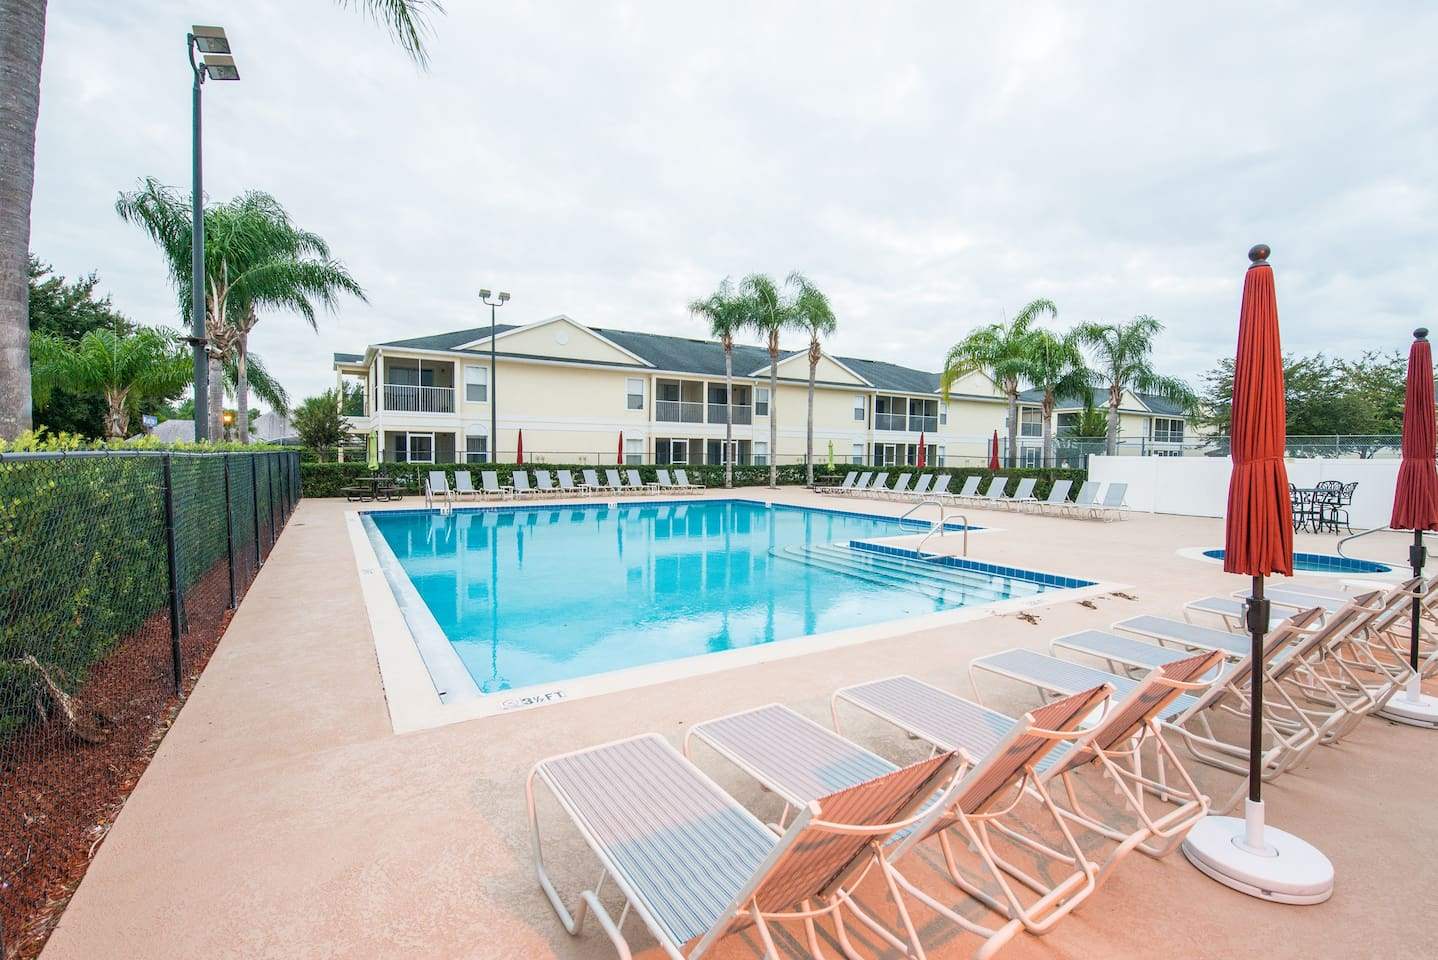 GRAND PALMS Community  - 3BR 2BATH Condo